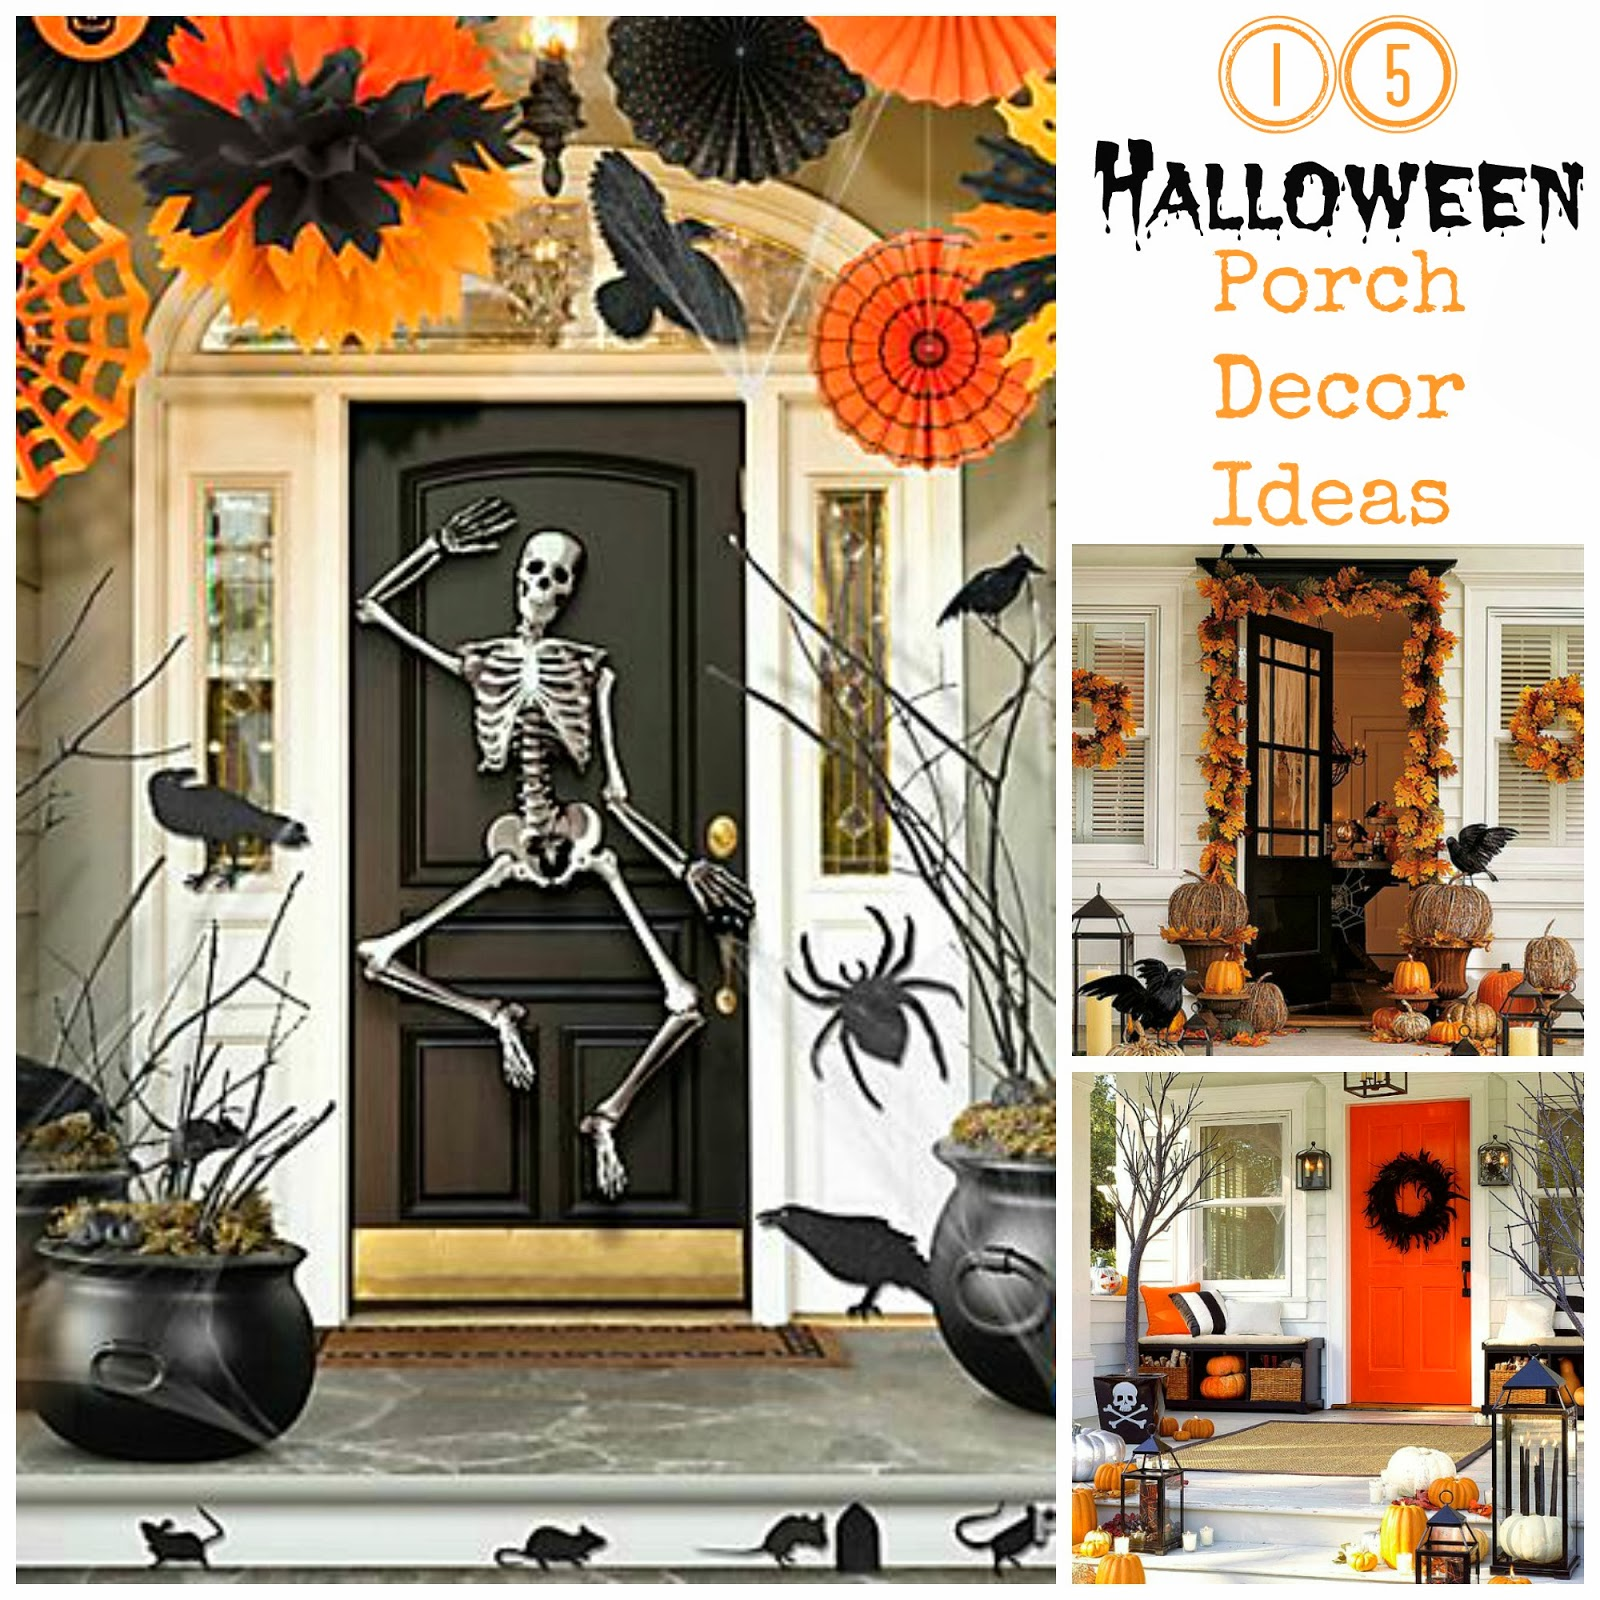 15 halloween porch decor ideas i dig pinterest - Halloween Decorating Ideas For Outside